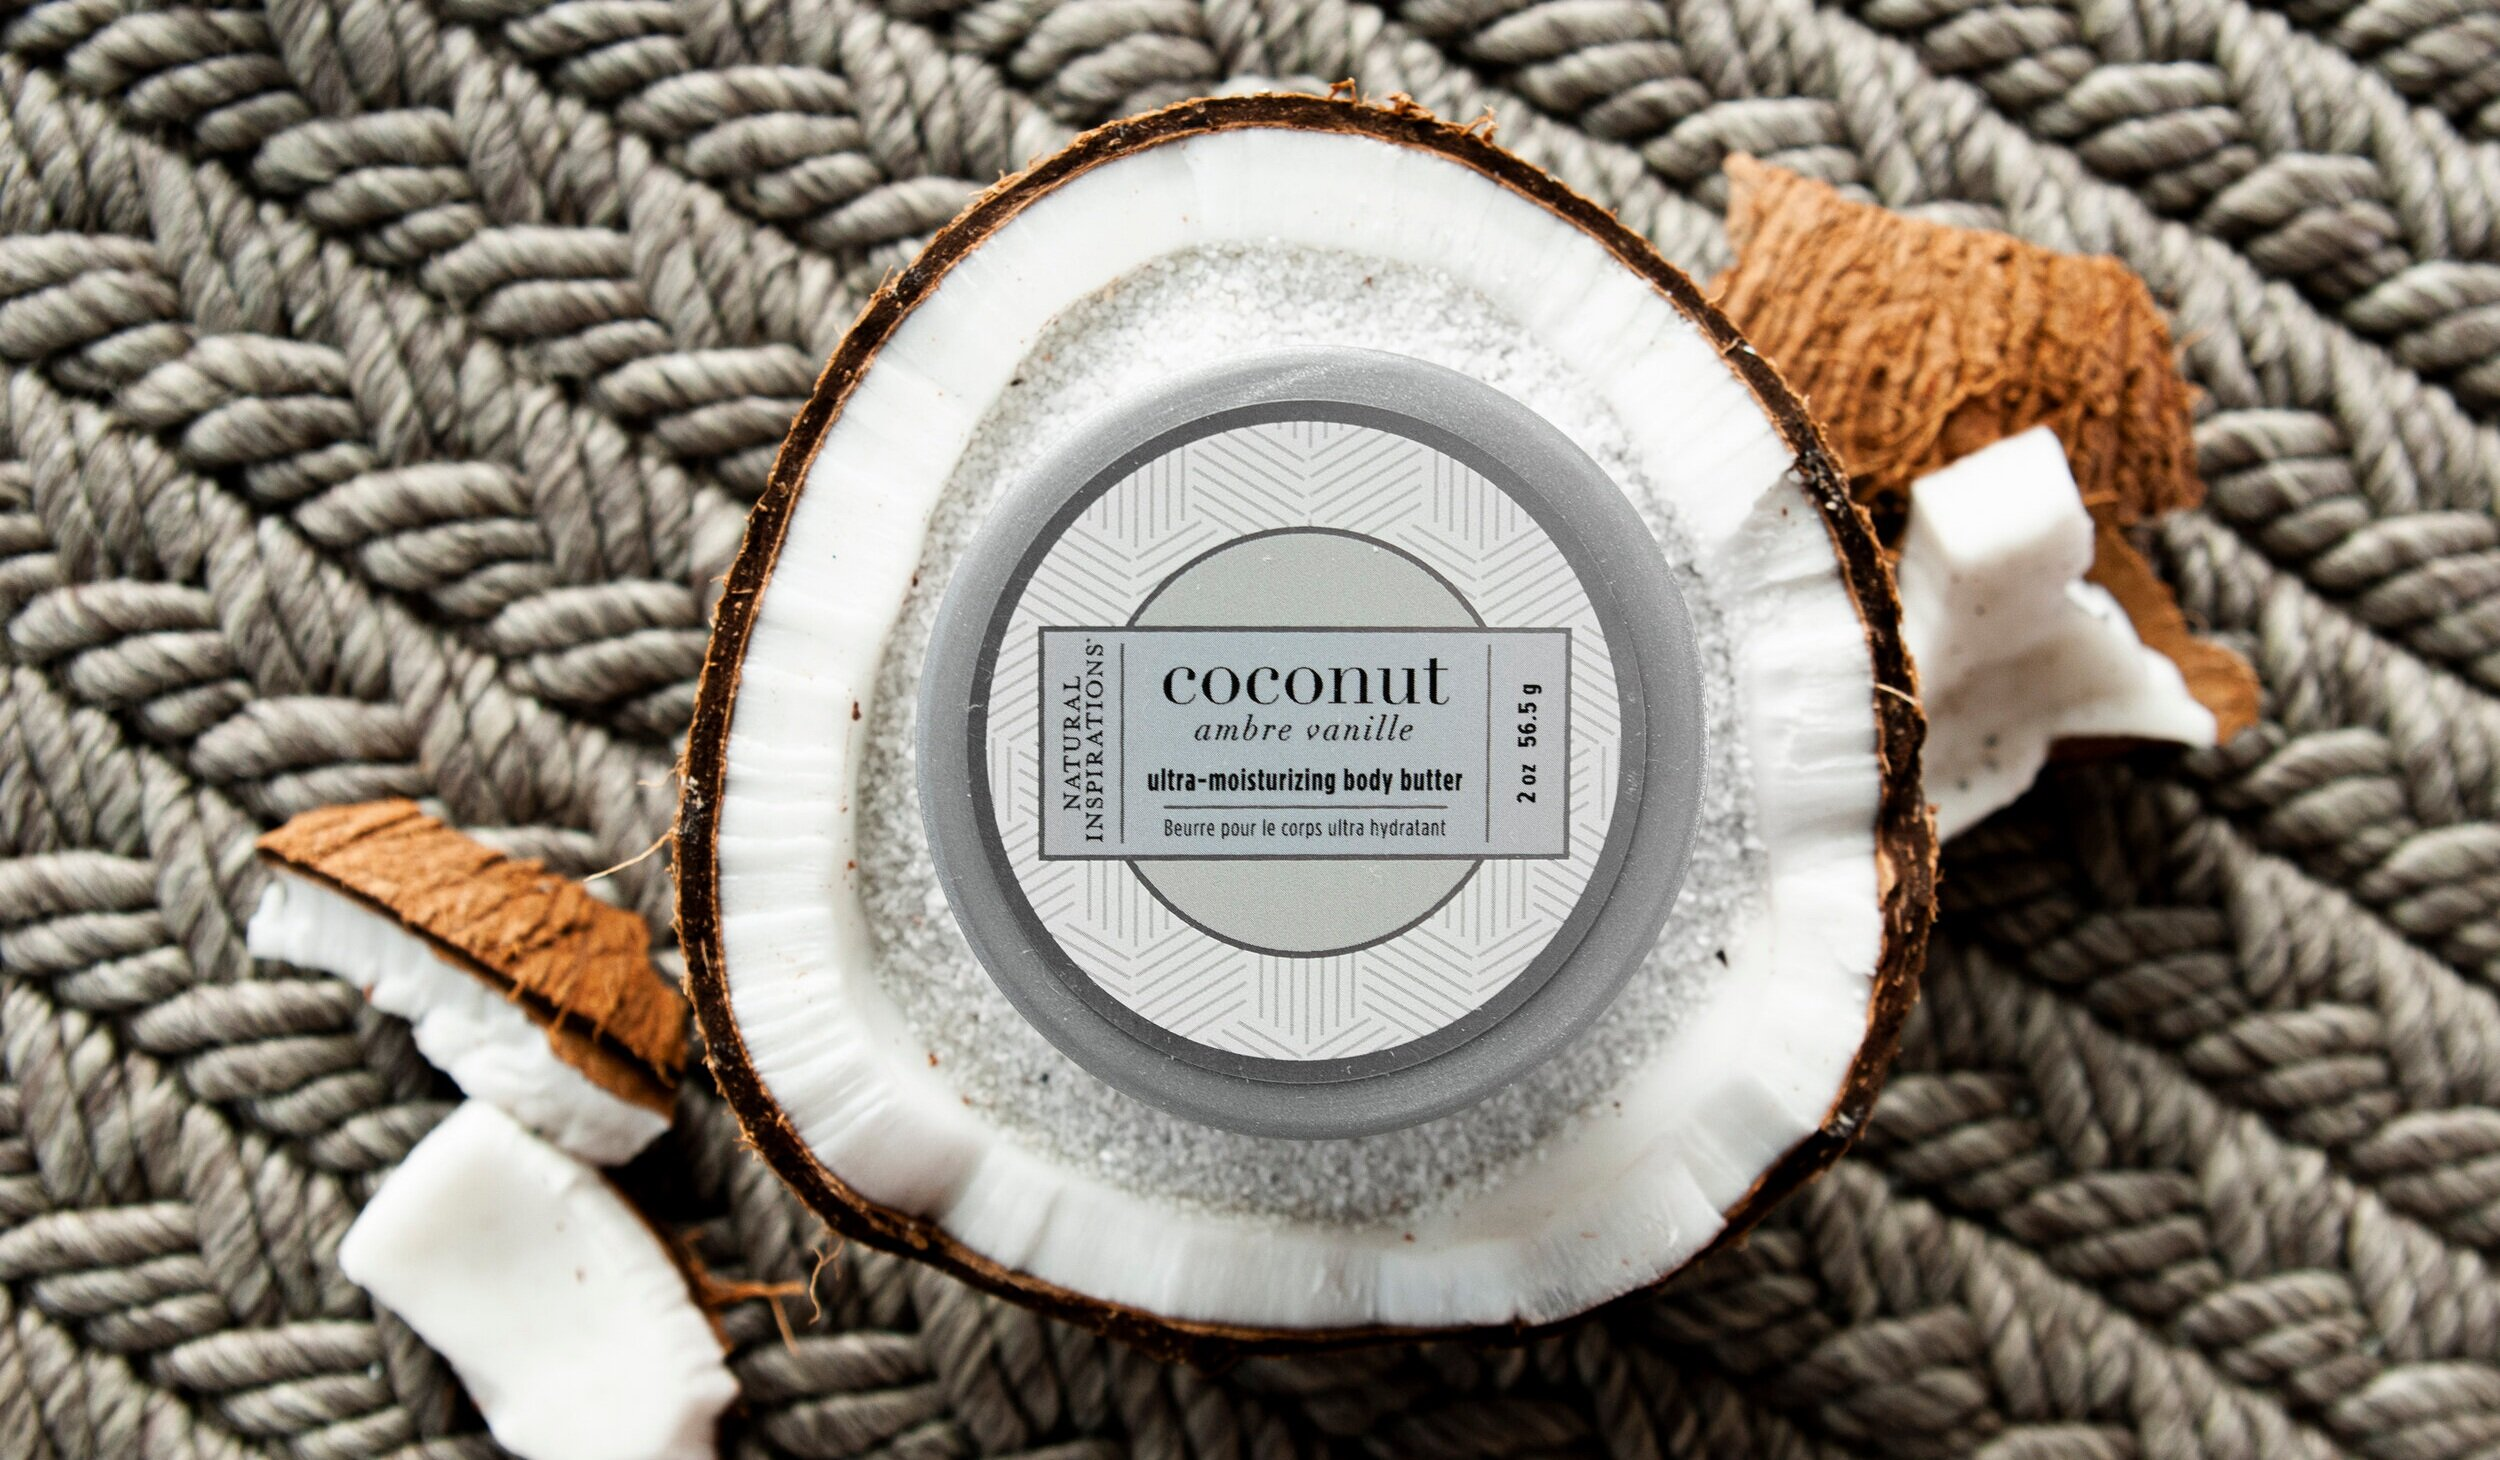 Ultra-Moisturizing Body Butter - The ultimate in luxury … deeply pamper & moisturize with nature's most sumptuous ingredients while delicious, fresh fragrances leave your body scented all over.